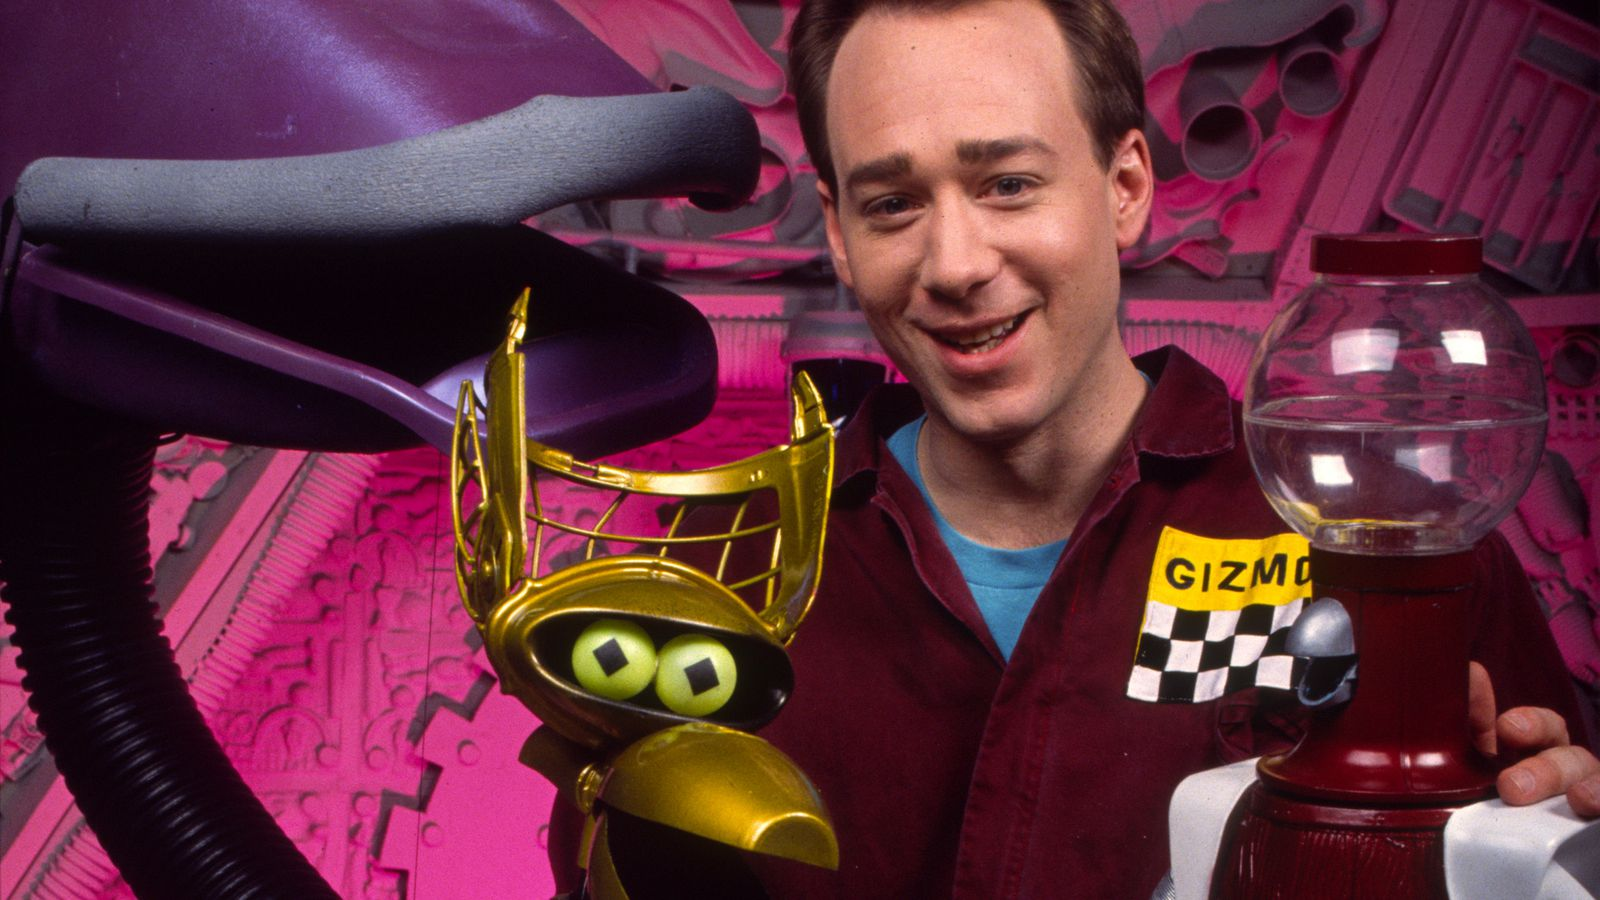 mystery science theater 3000 wikiquote - HD1200×800